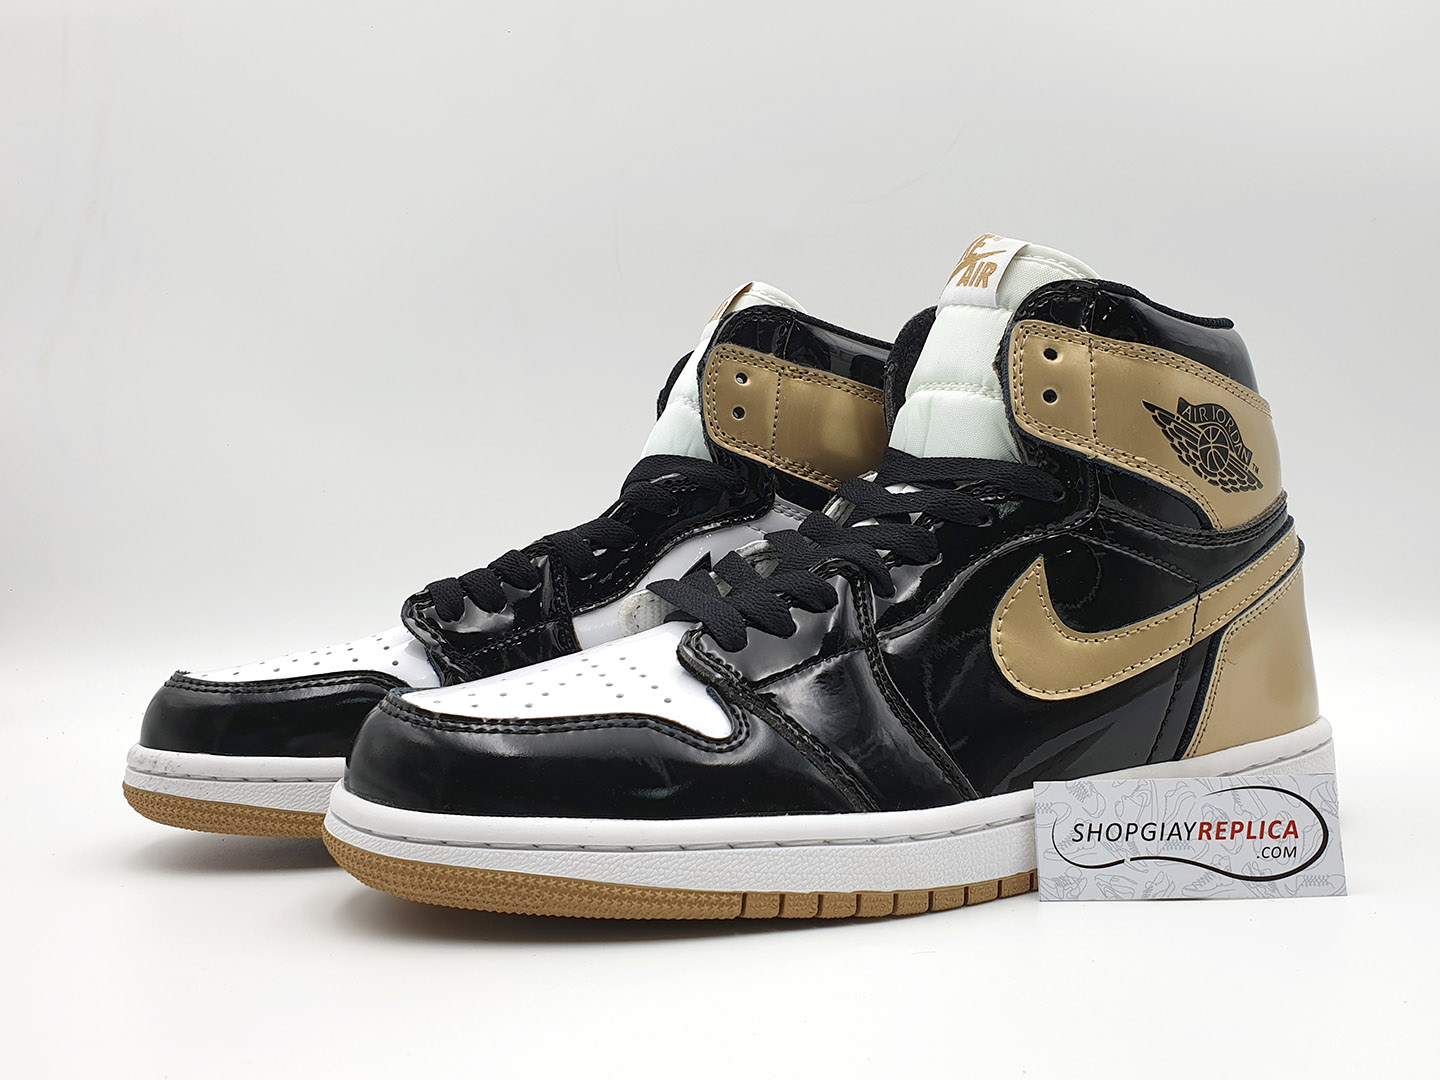 giay Nike Air Jordan 1 Retro High gold toe replica